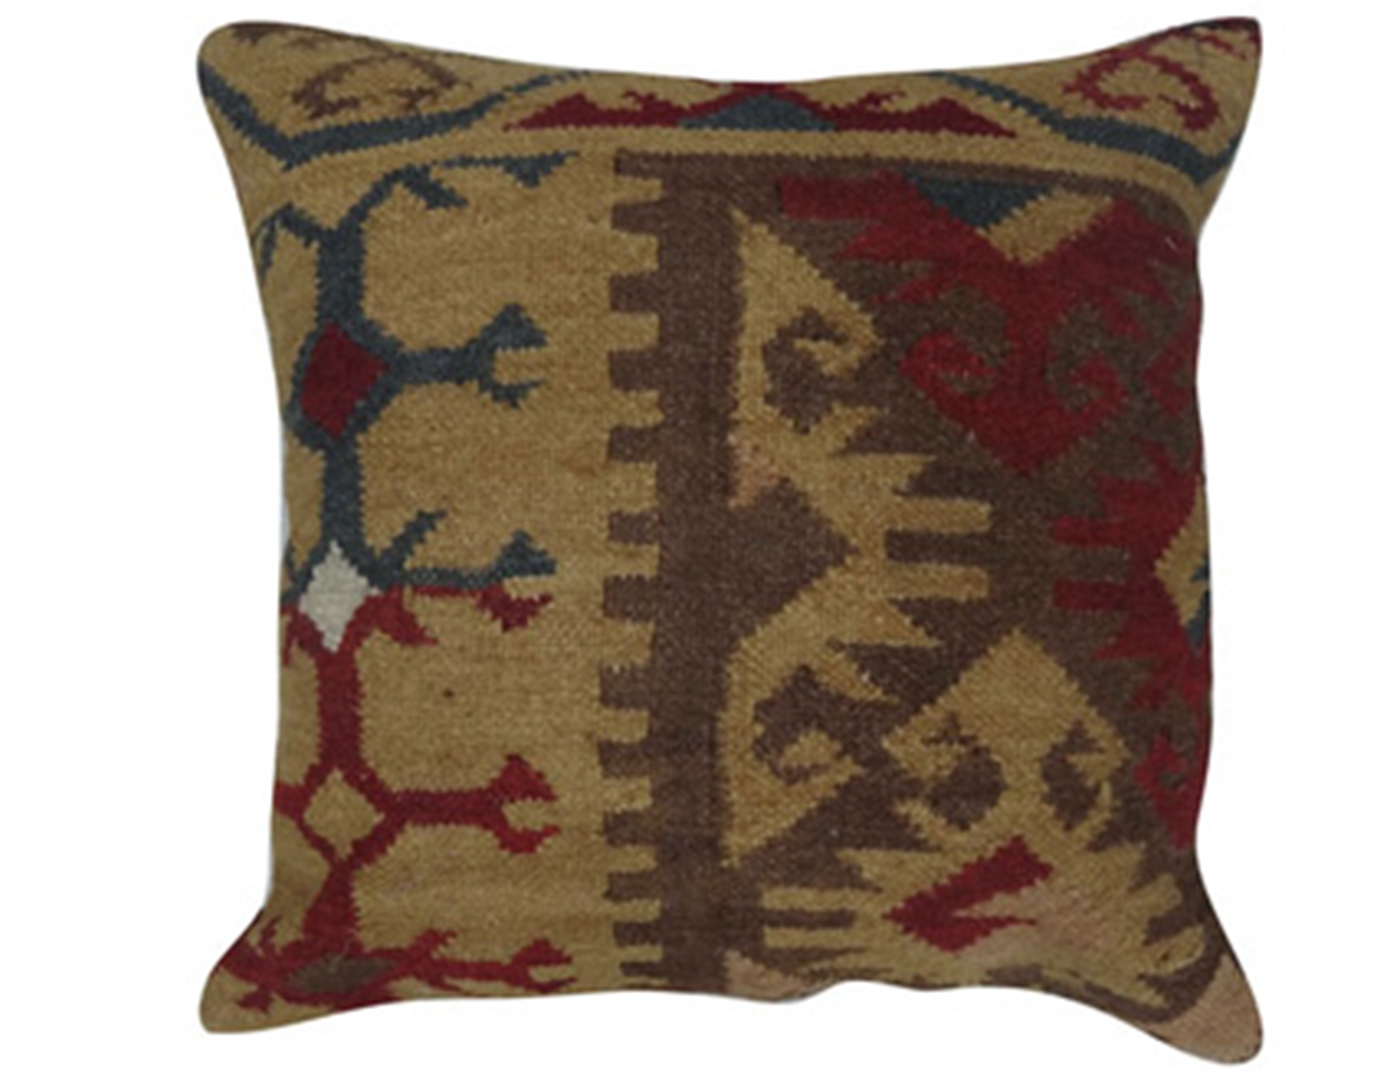 Kilim Design Pillow